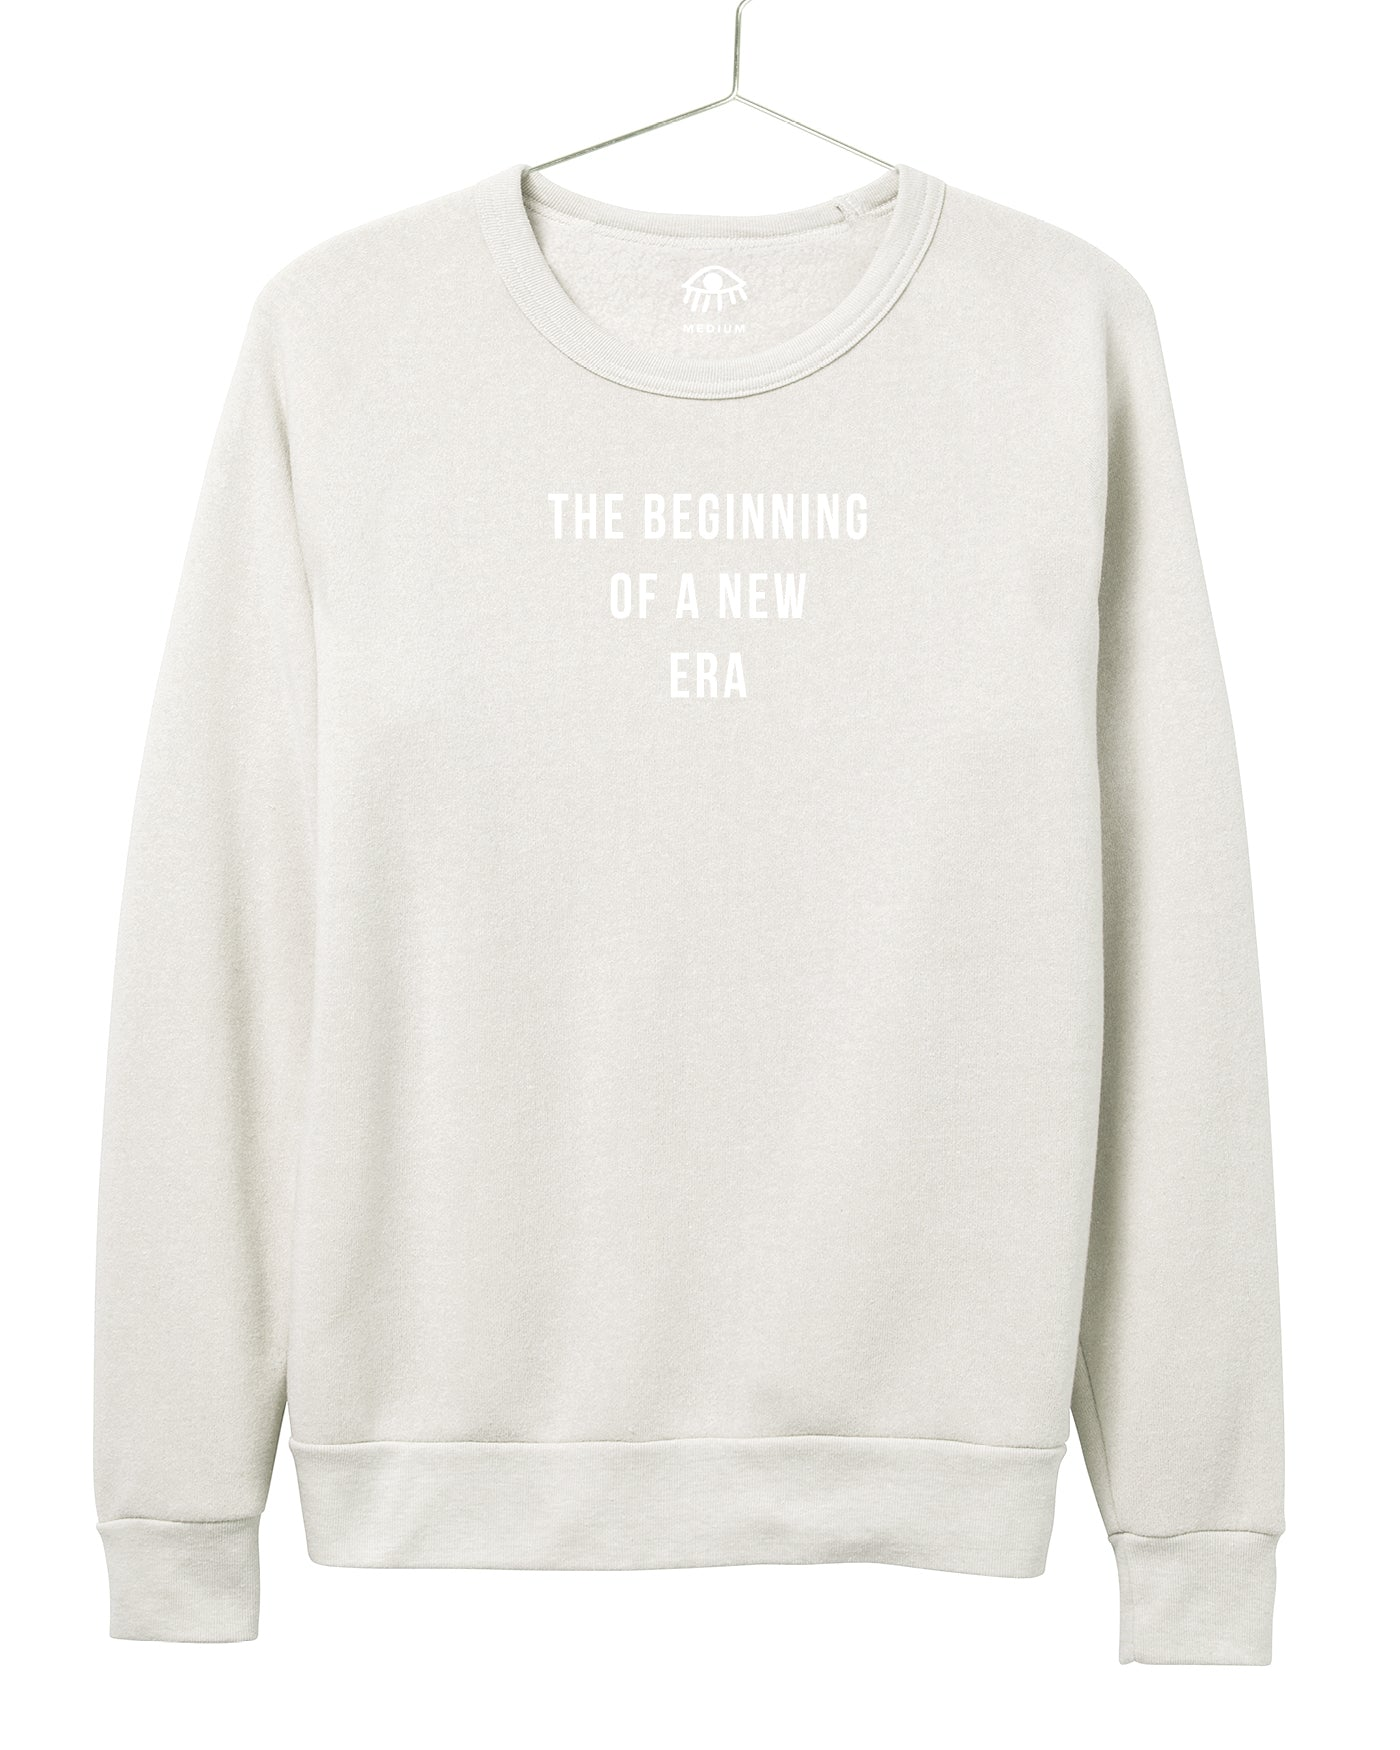 The beginning of a new era Women's Crewneck